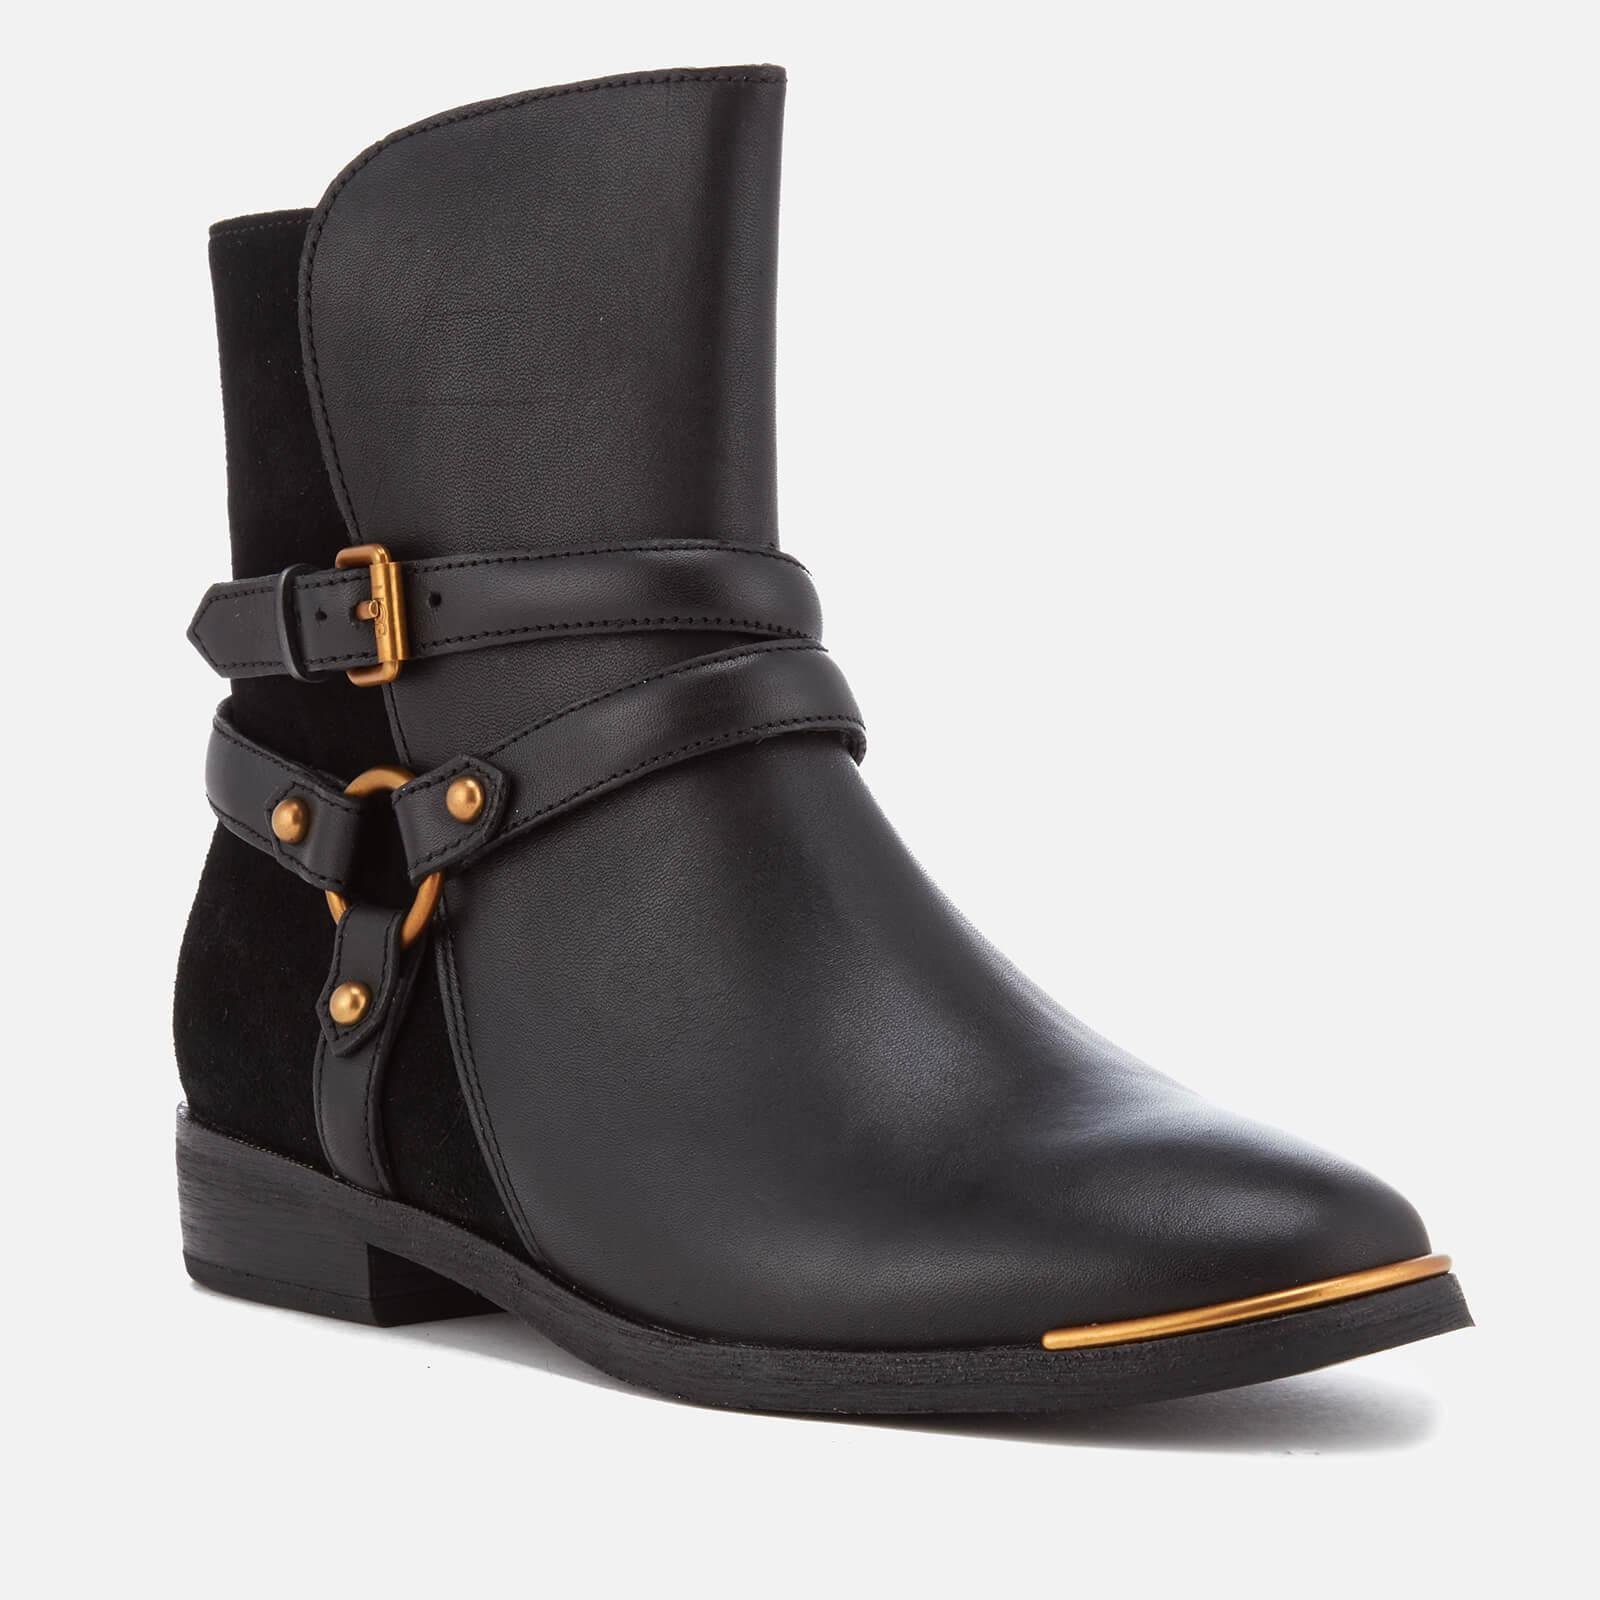 458a713cef2 Ugg Black Kelby Leather Ankle Boots